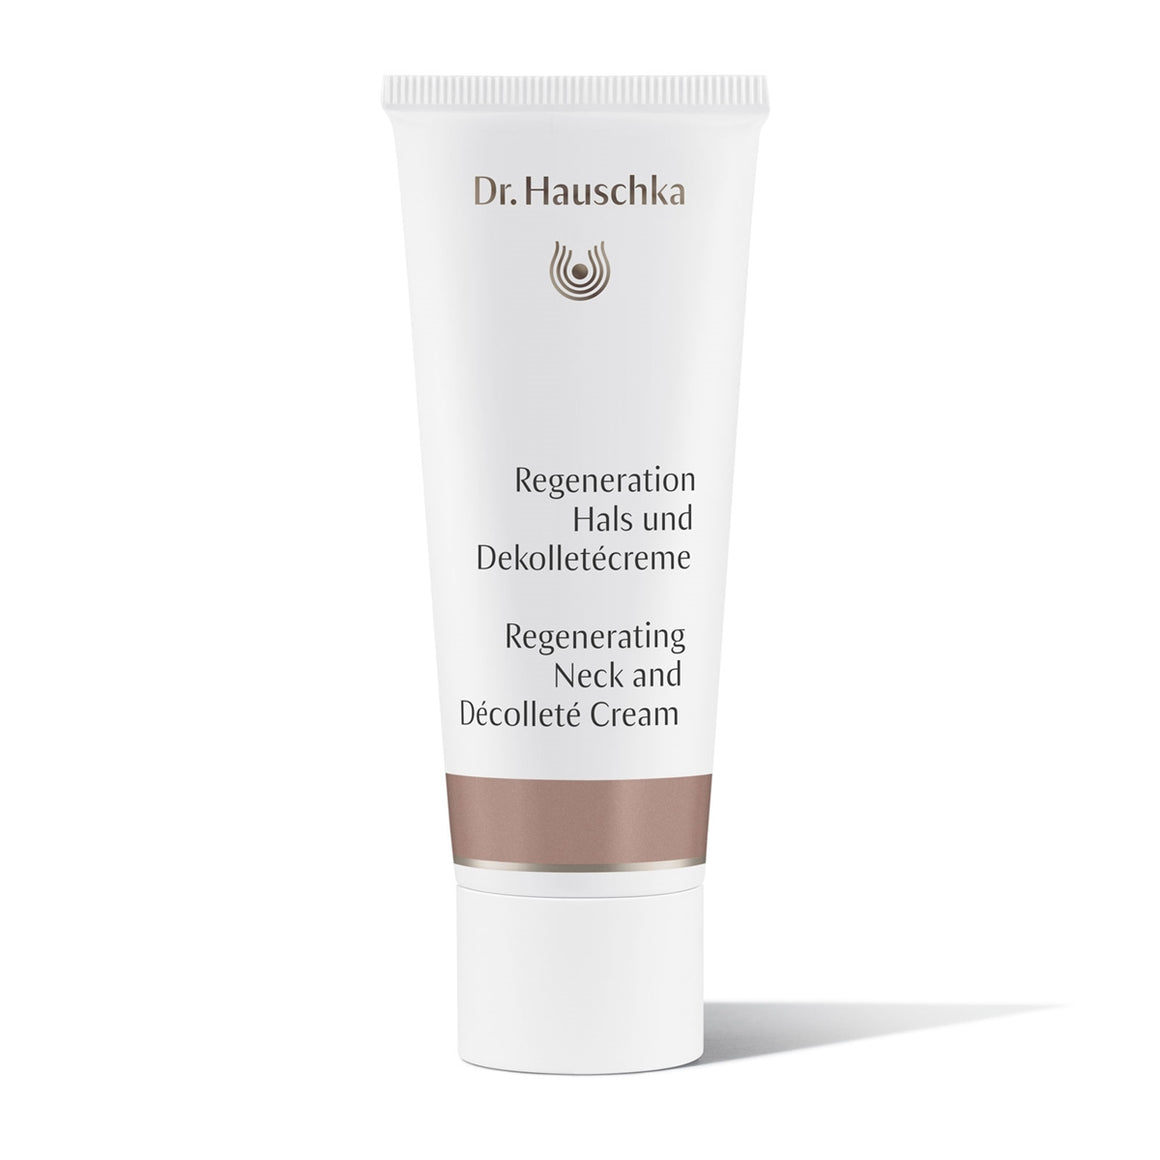 Regenerating Neck & Decollete Cream - Aldha